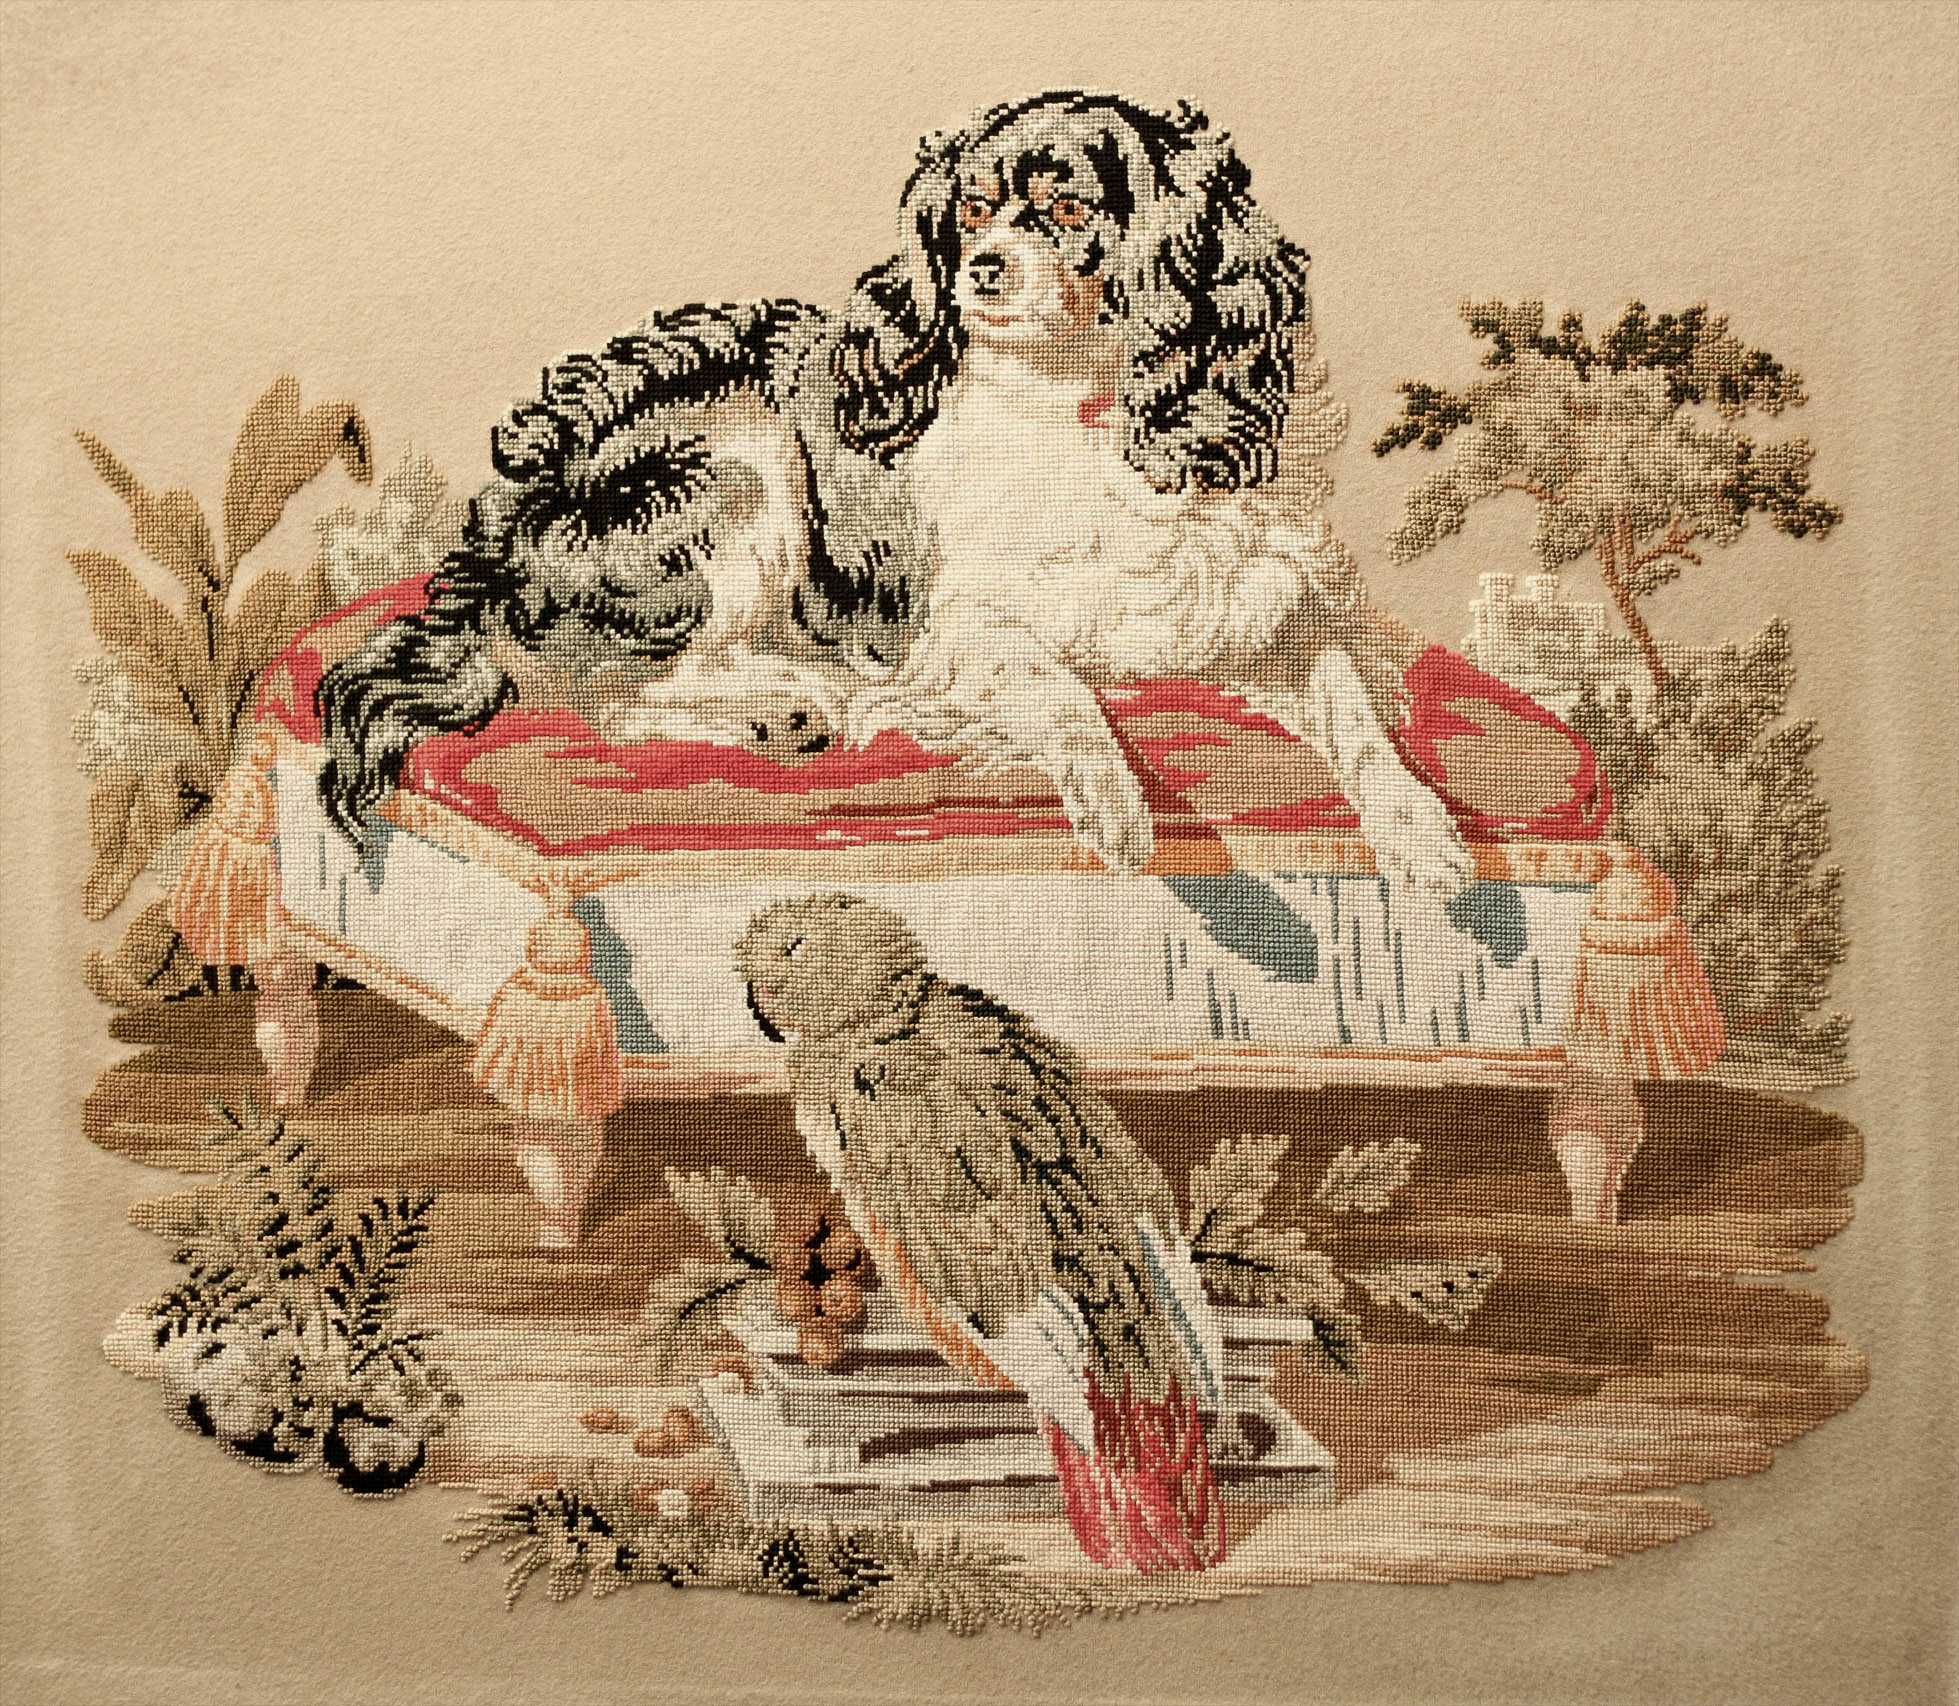 Victorian needlepoint / needlework / textile of the Cavalier Spaniel 'Dash', Queen Victoria's favourite, and the parrot Lory.